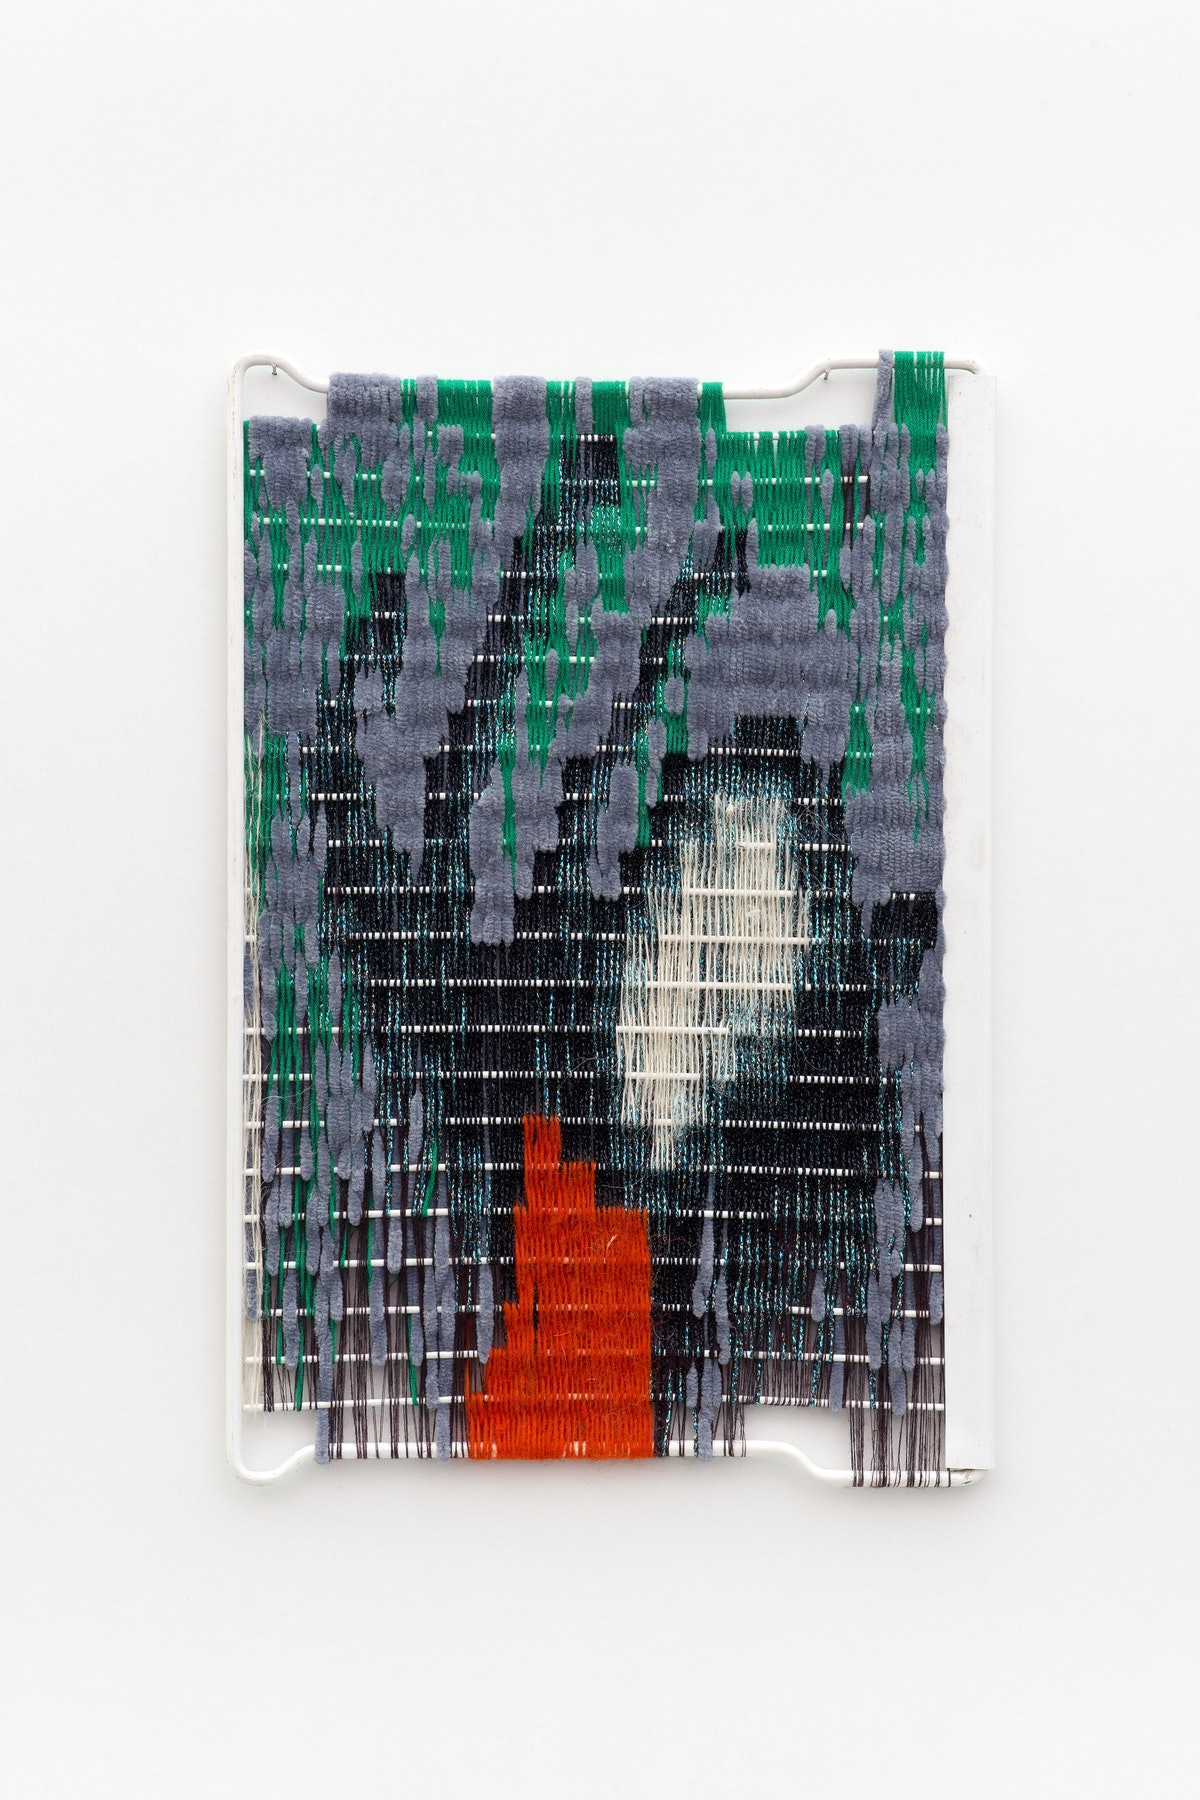 Zoë Paul_Hand Sign C_2015_wool and thread on found fridge grill_45x30 cm_Courtesy The Breeder